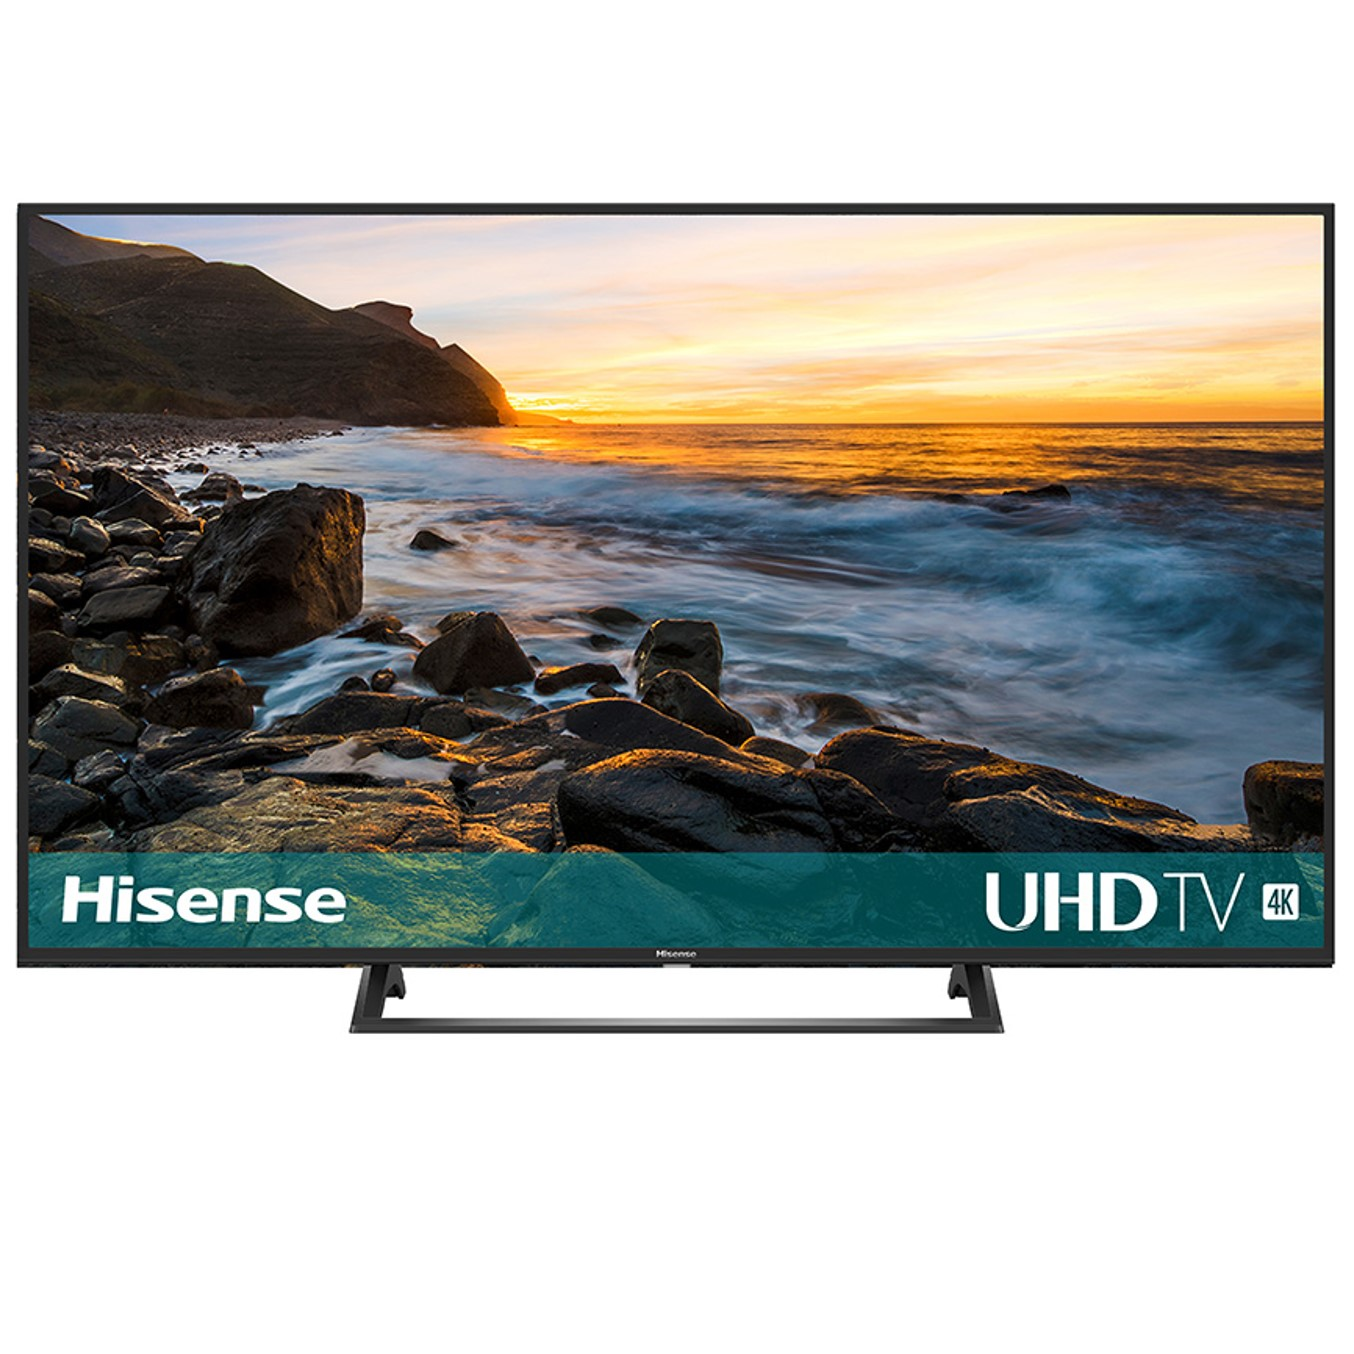 "TV HISENSE 50"" LED 4K UHD/ 50B7300/ HDR10/ SMART TV/ 3 HDMI/ 2 USB/ DVB-T2/T/C/S2/S/ QUAD CORE"